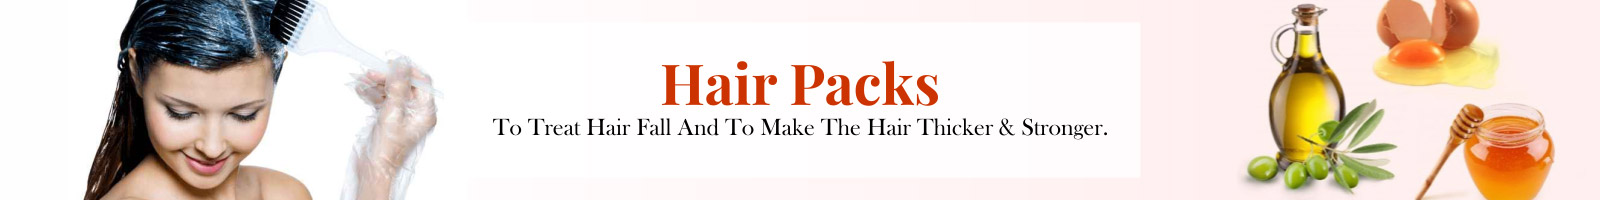 Hair Packs